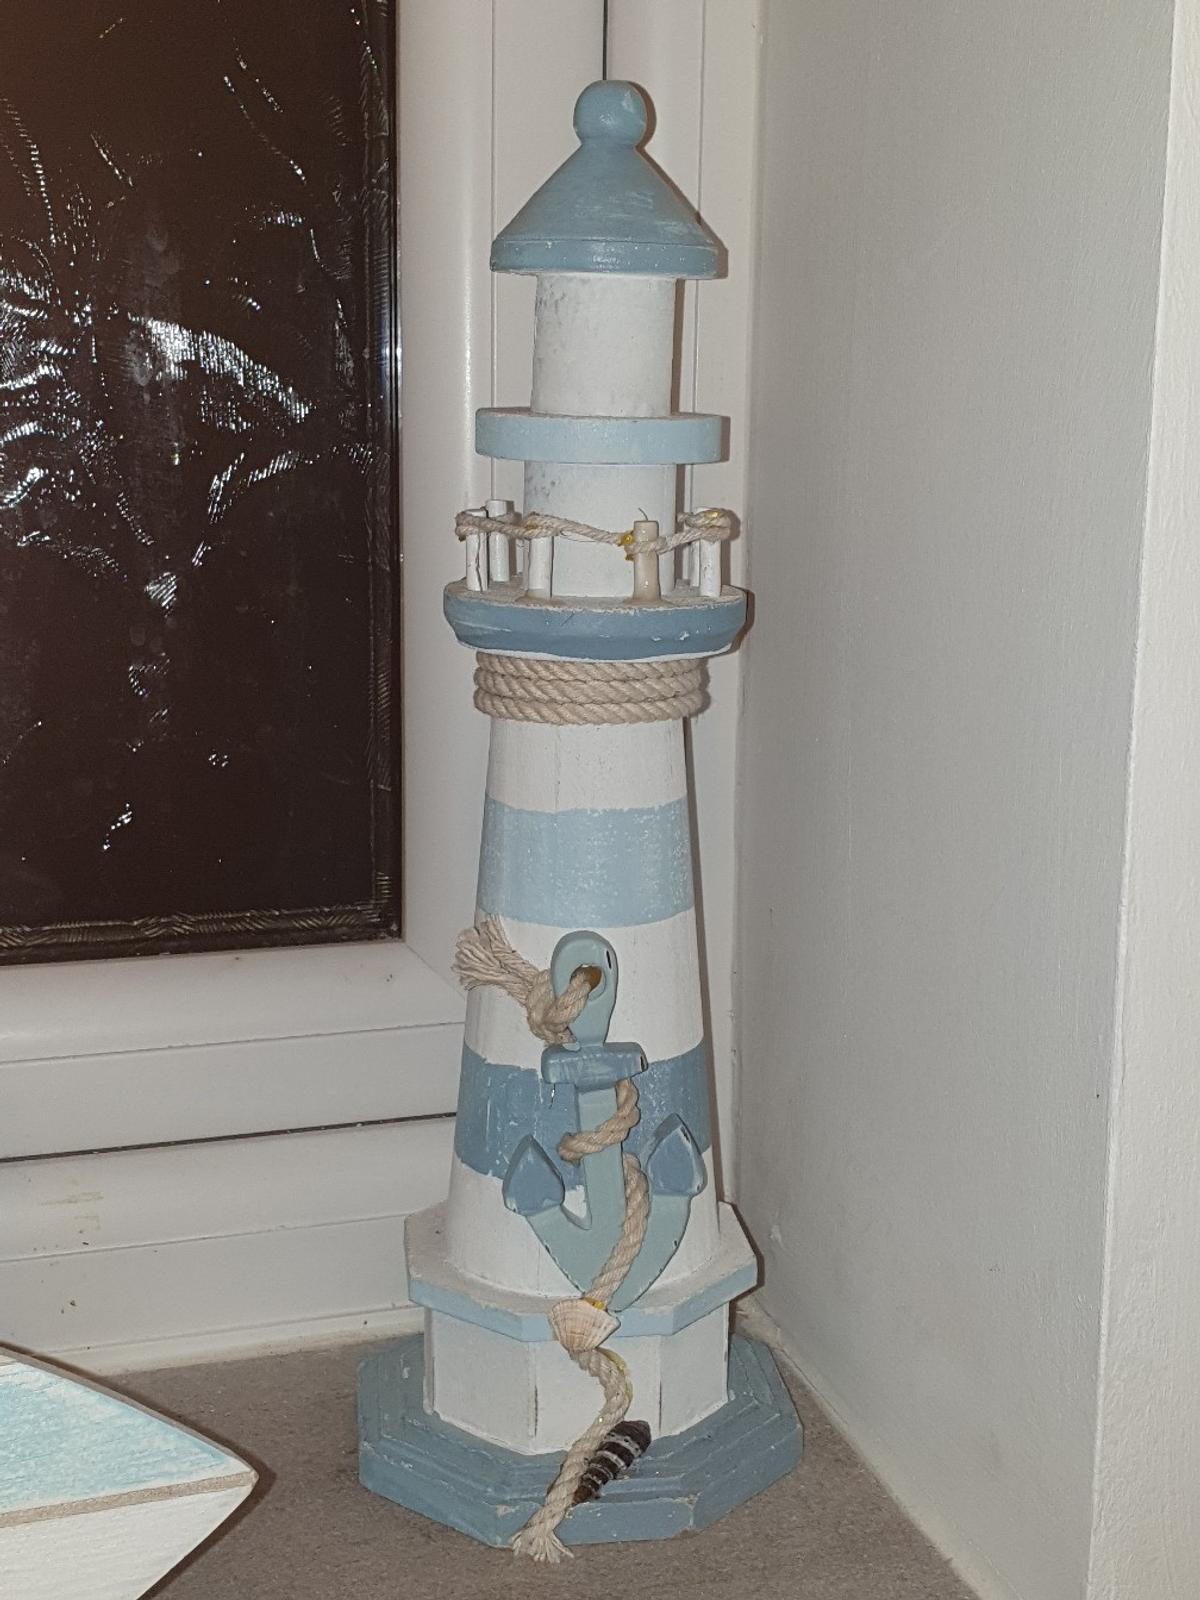 Nautical bathroom themed lighthouse⛵  Excellent condition  WONT POST.  Have a l👀k at my other nautical themed items for sale!